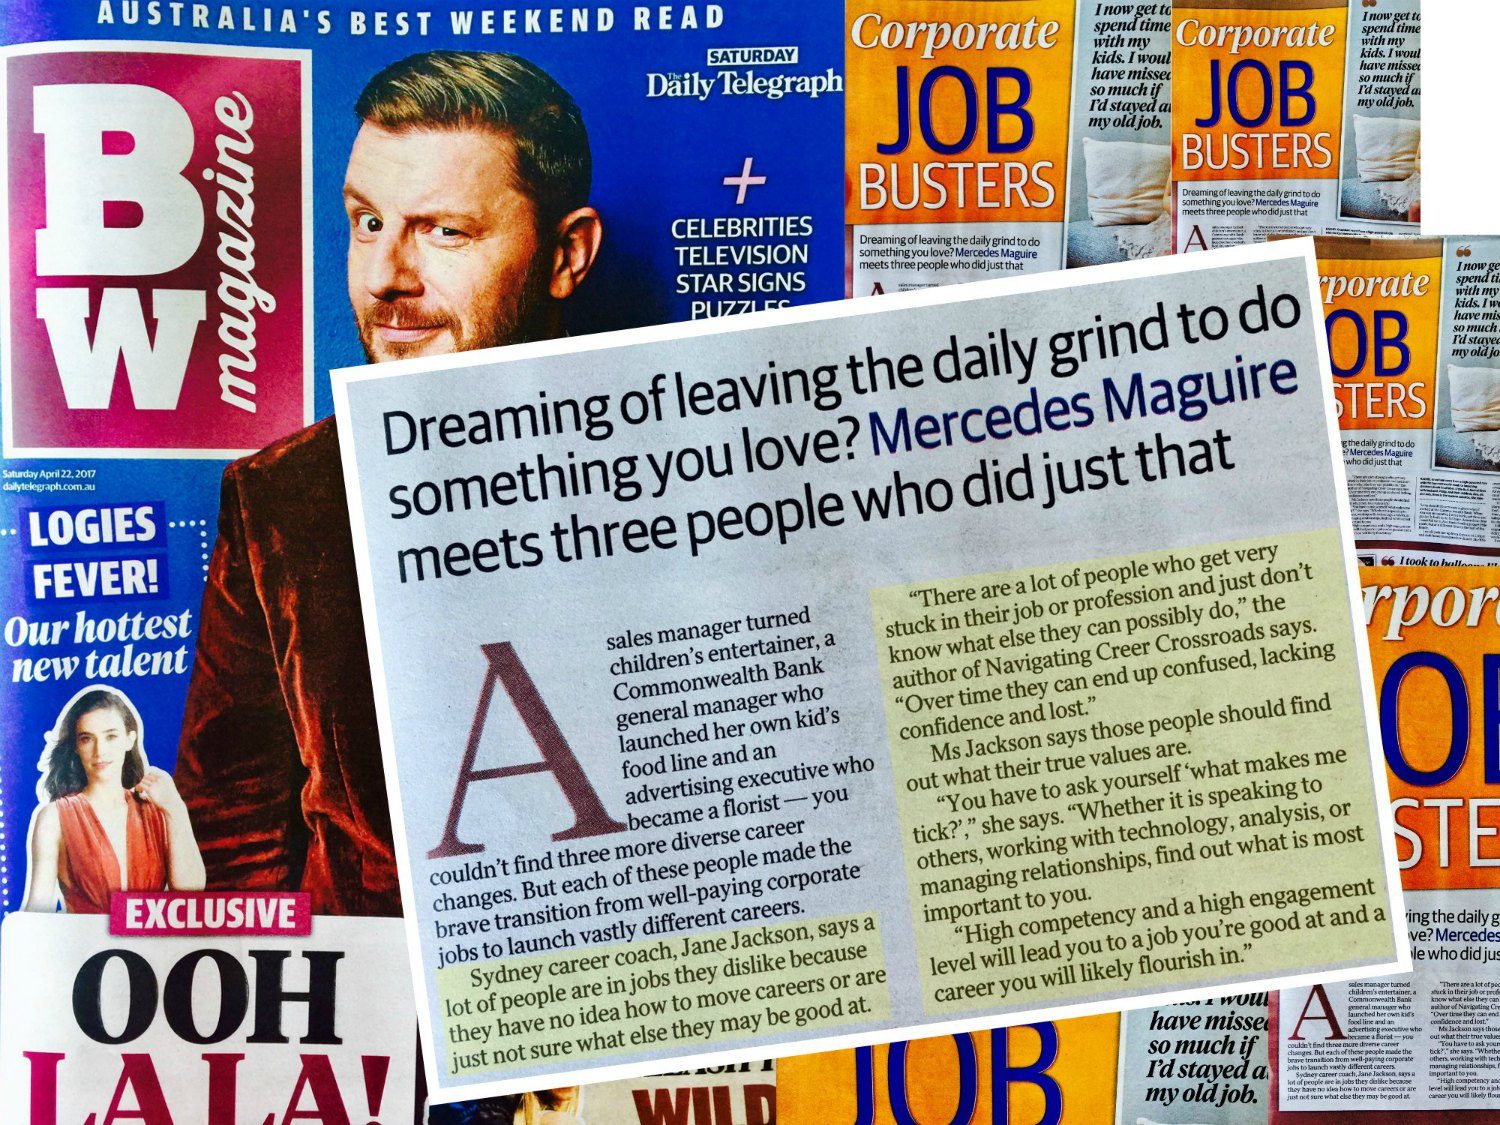 Daily Telegraph, BW Magazine, Jane Jackson, Career Coach, Corporate Job Busters, career, sydney, australia